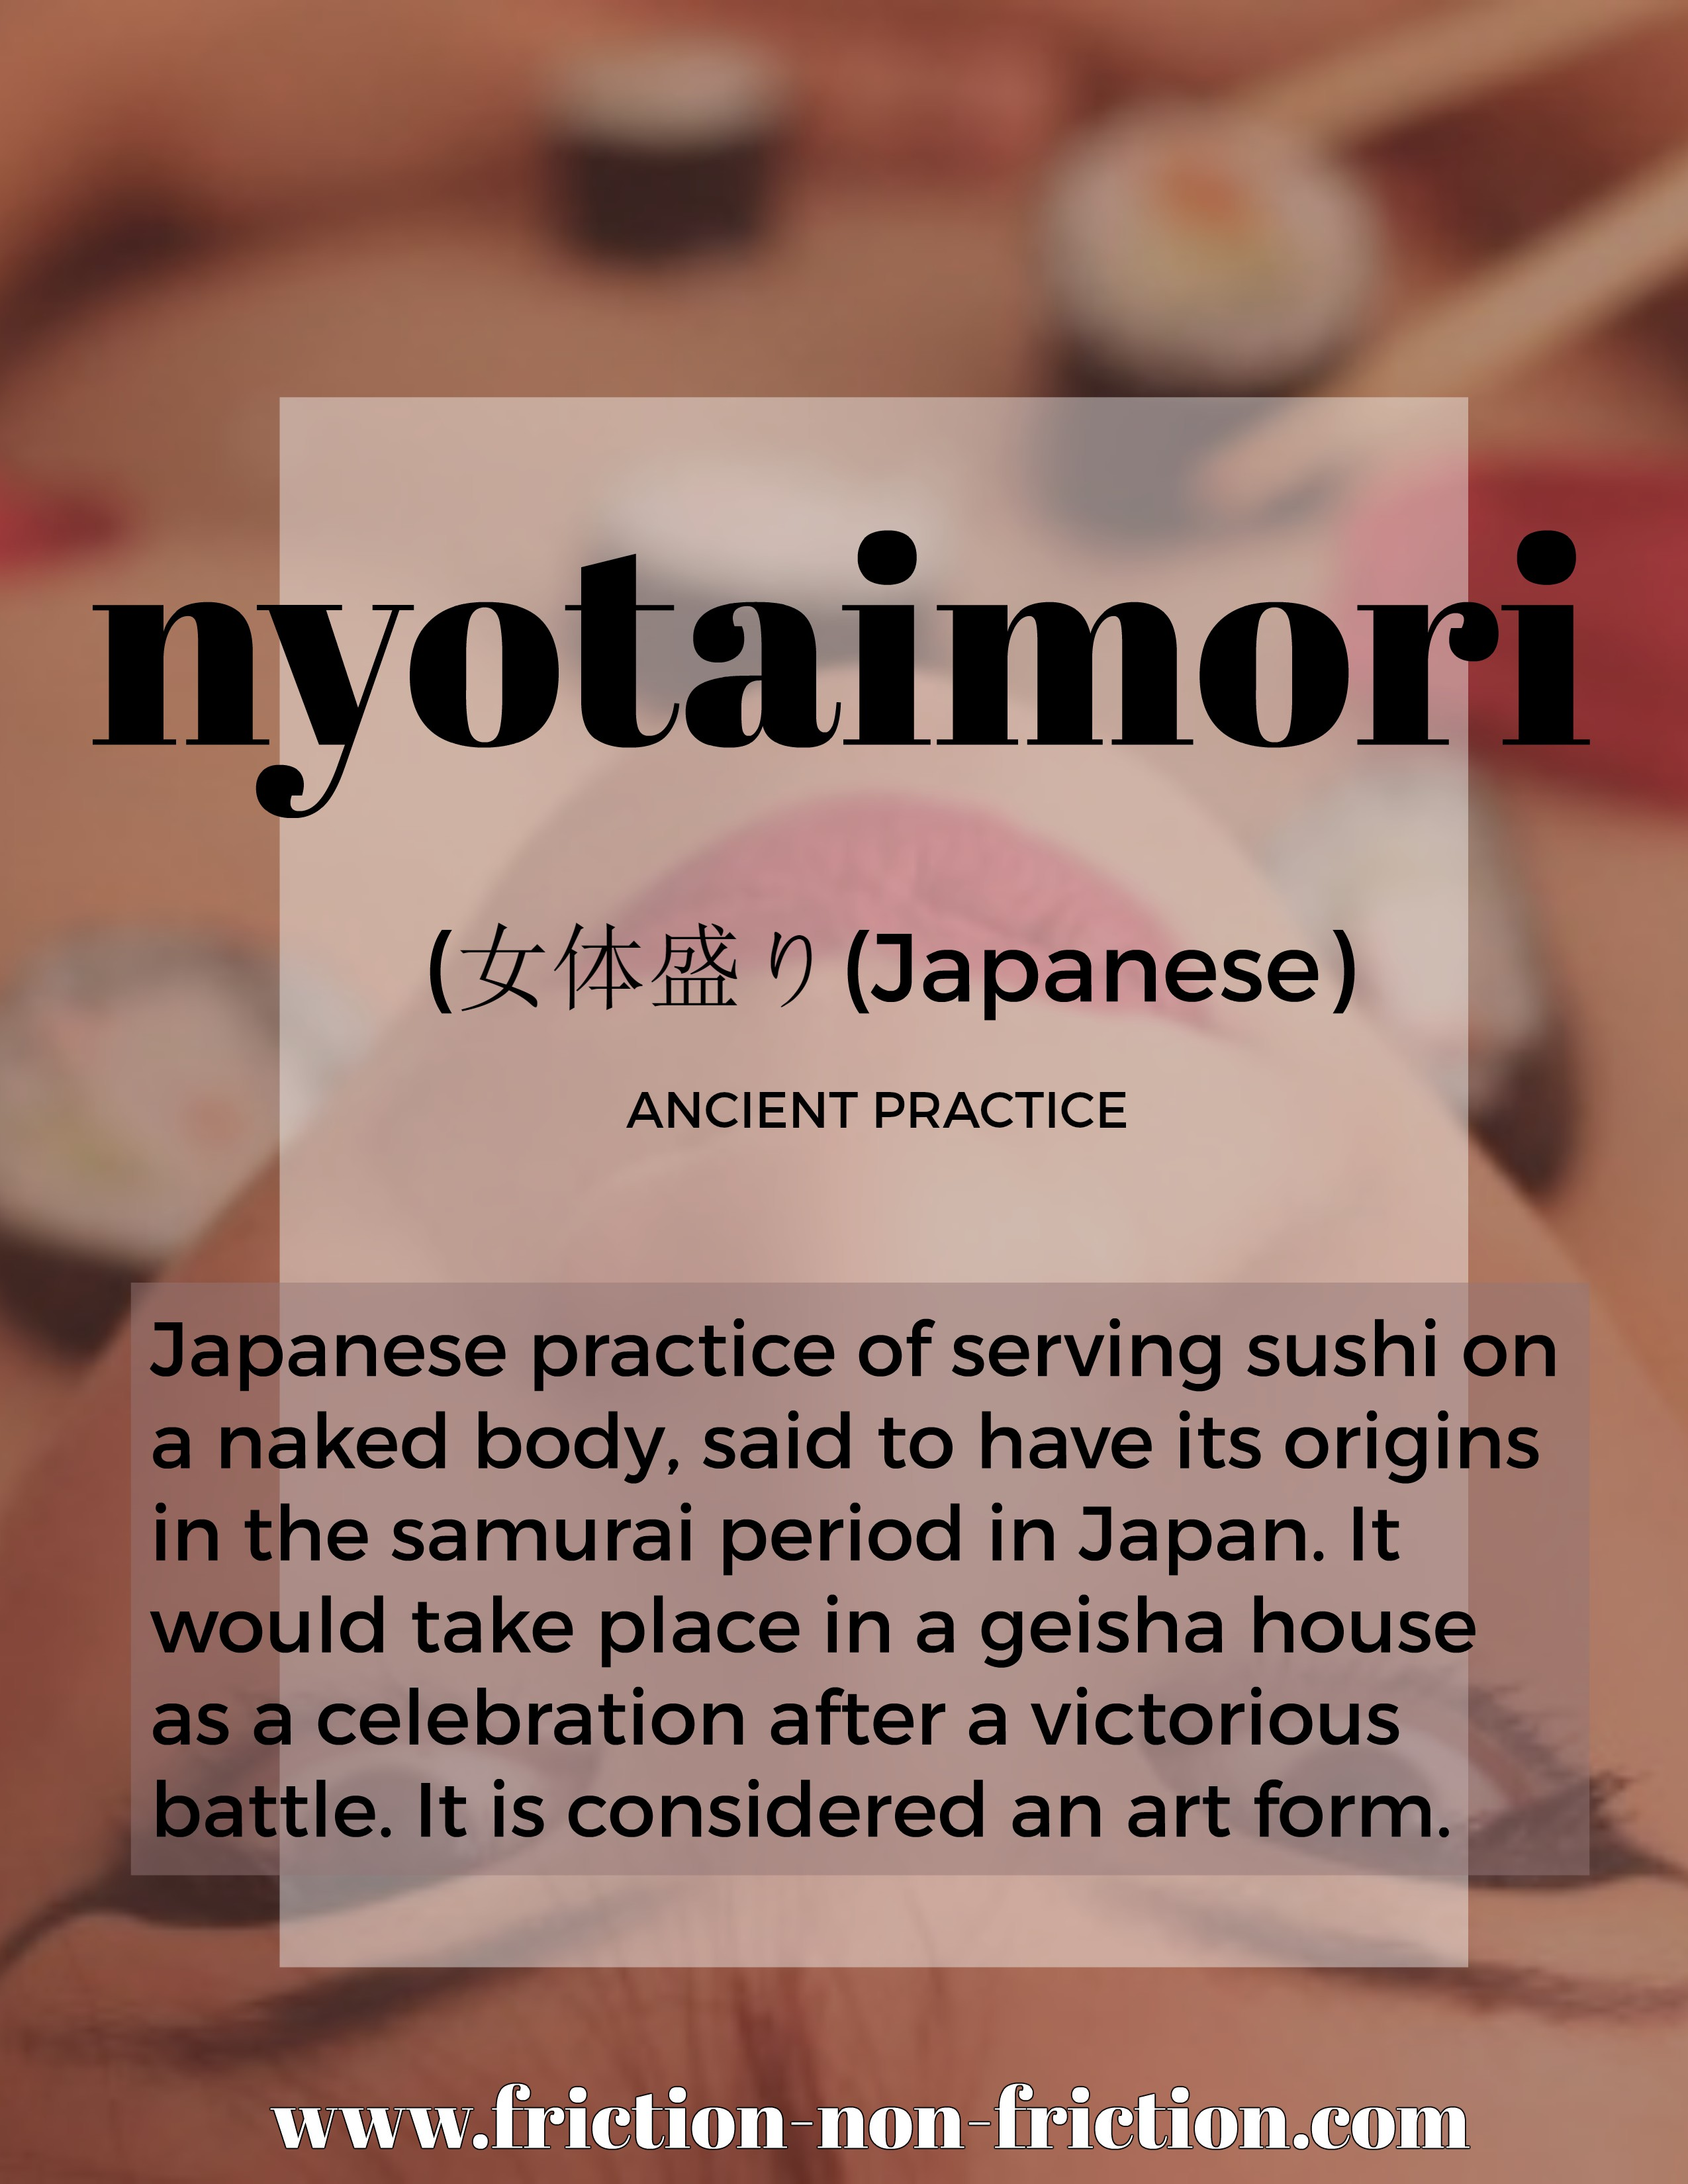 Nyotaimori  -- another great FRICTIONARY definition from Friction non Friction